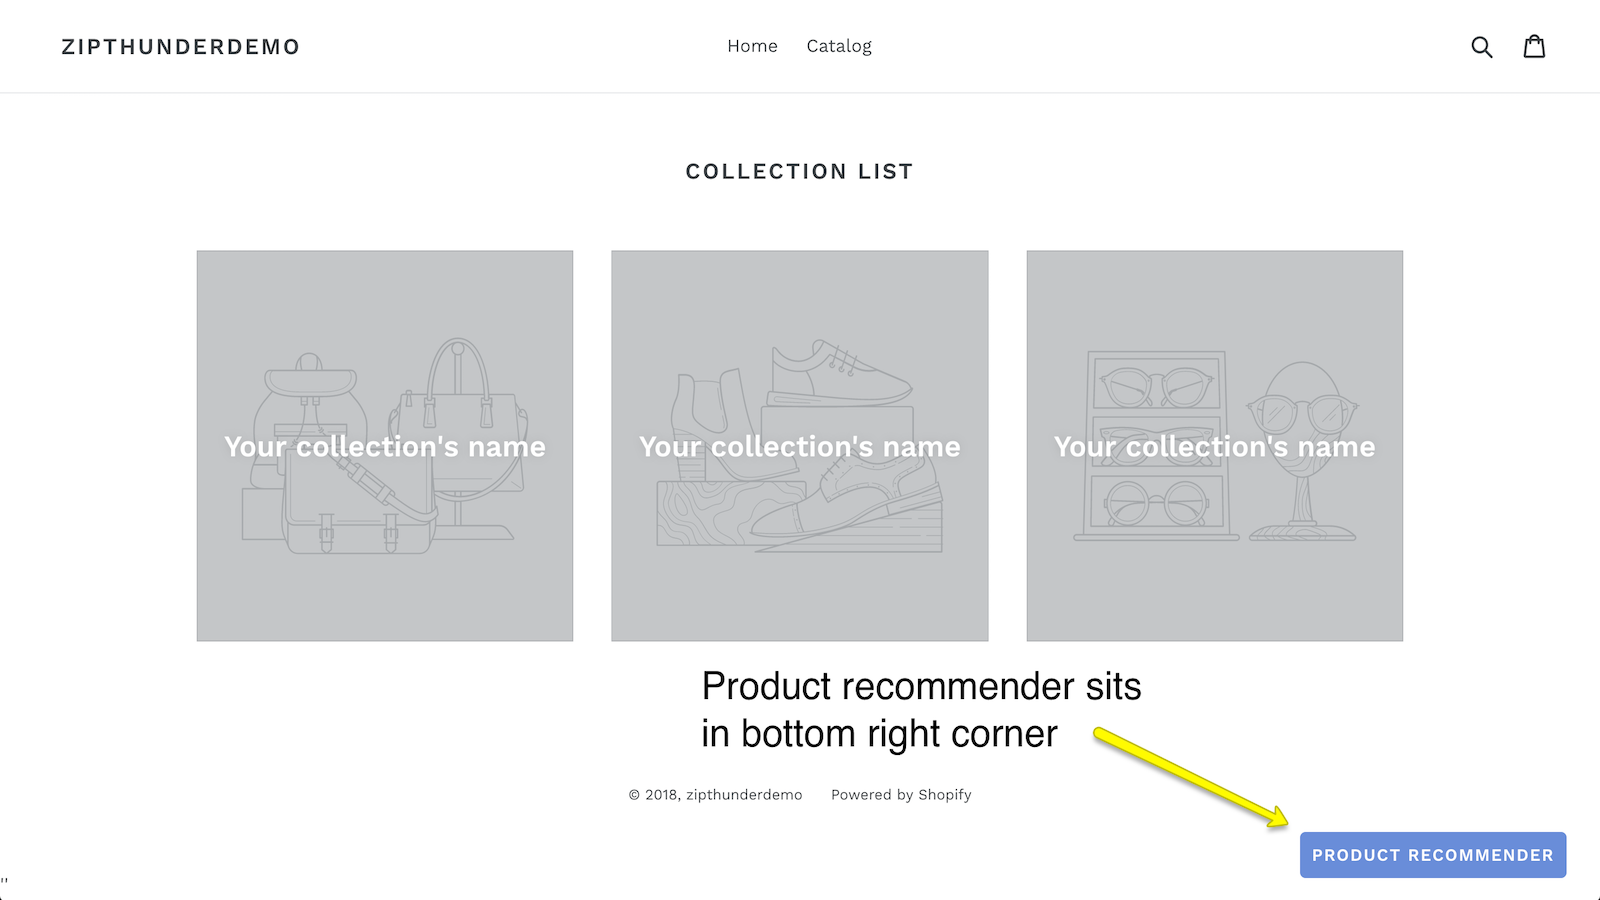 product recommender sits in right corner